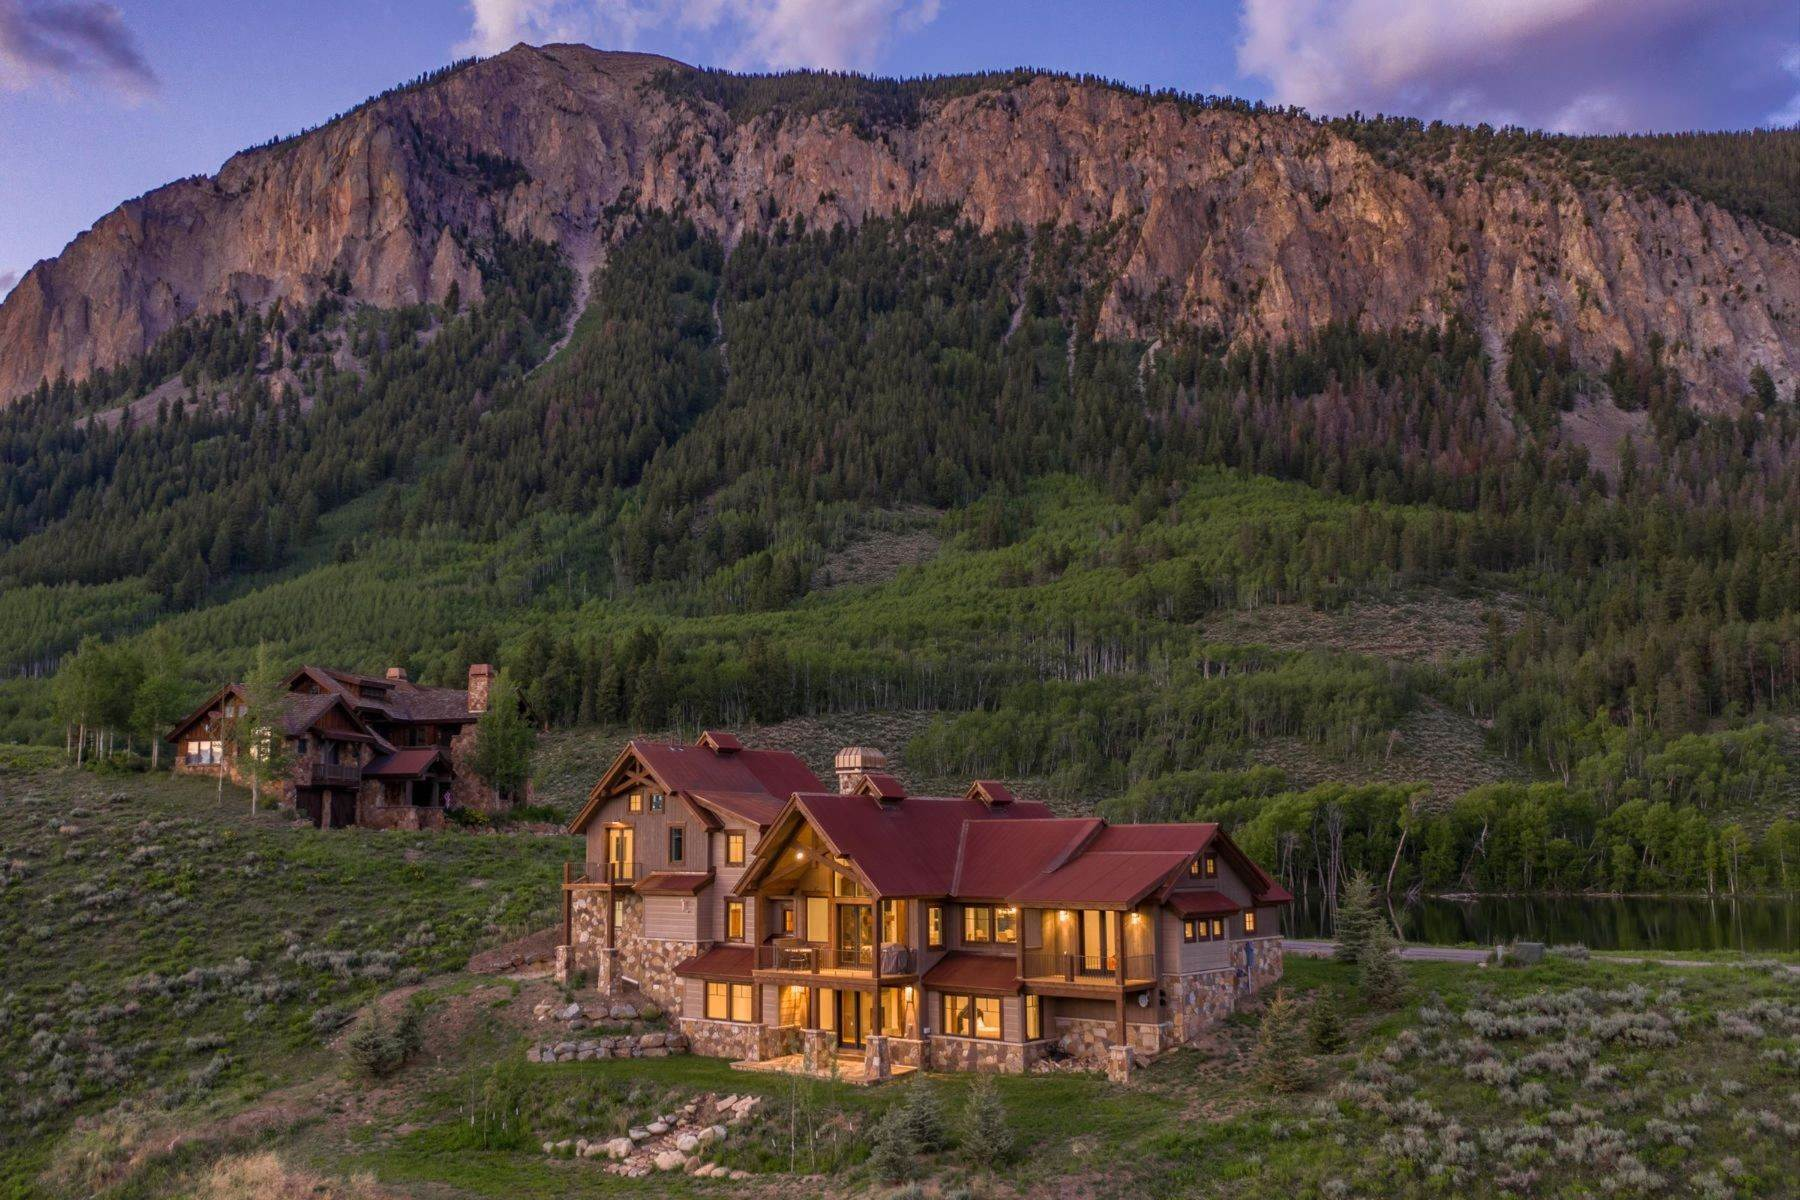 Single Family Homes for Active at Lake views. Mountain views. Golf views. 1025 Skyland Drive Crested Butte, Colorado 81224 United States